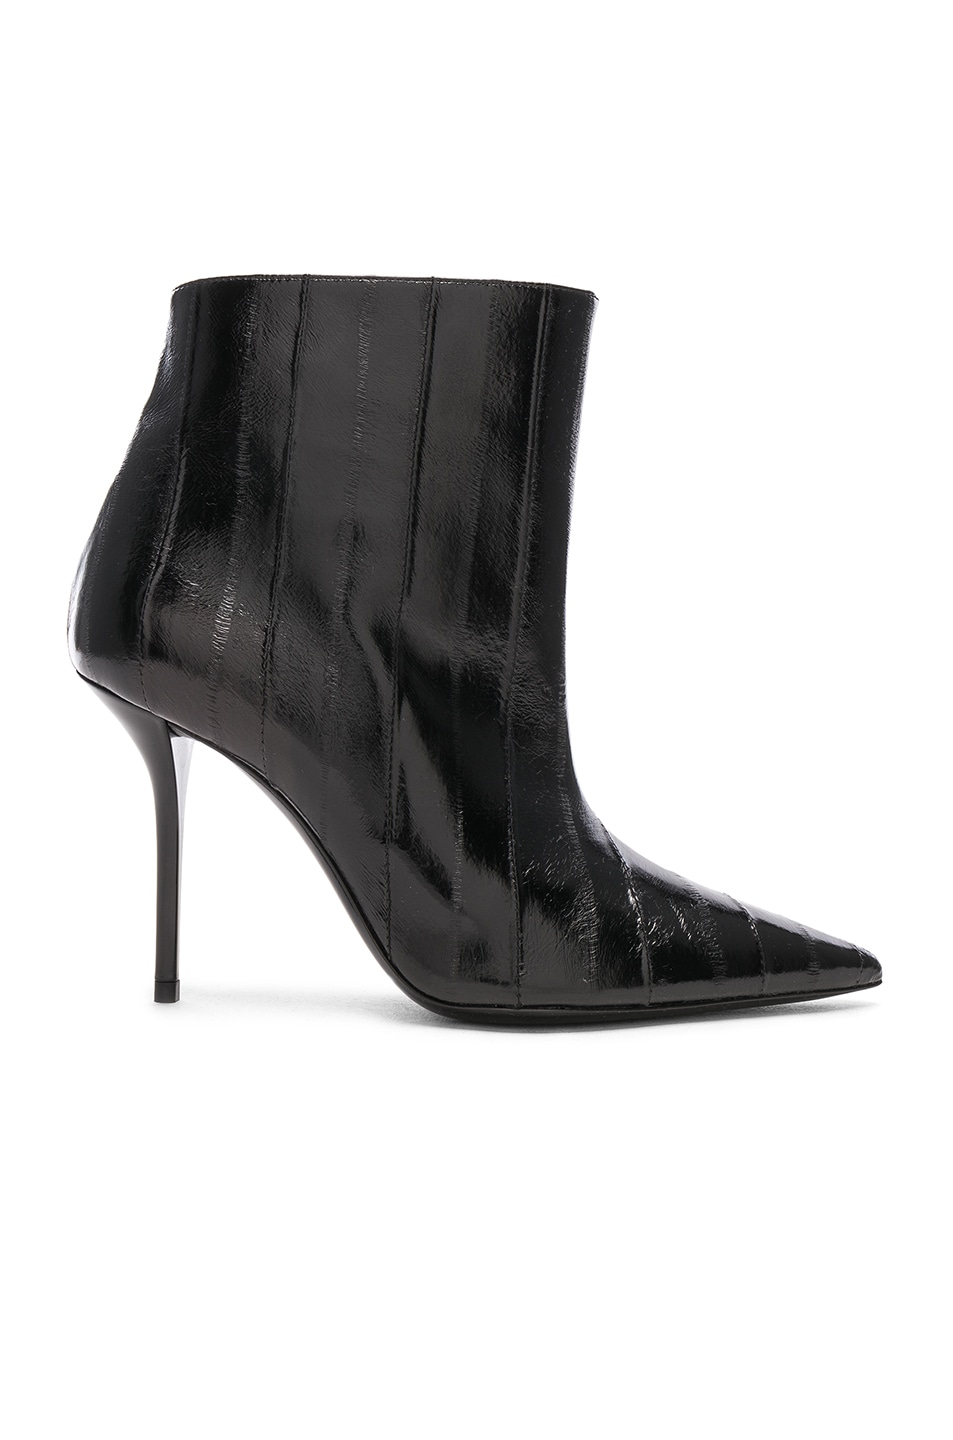 Image 1 of Saint Laurent Eel Leather Pierre Stiletto Ankle Boots in Black